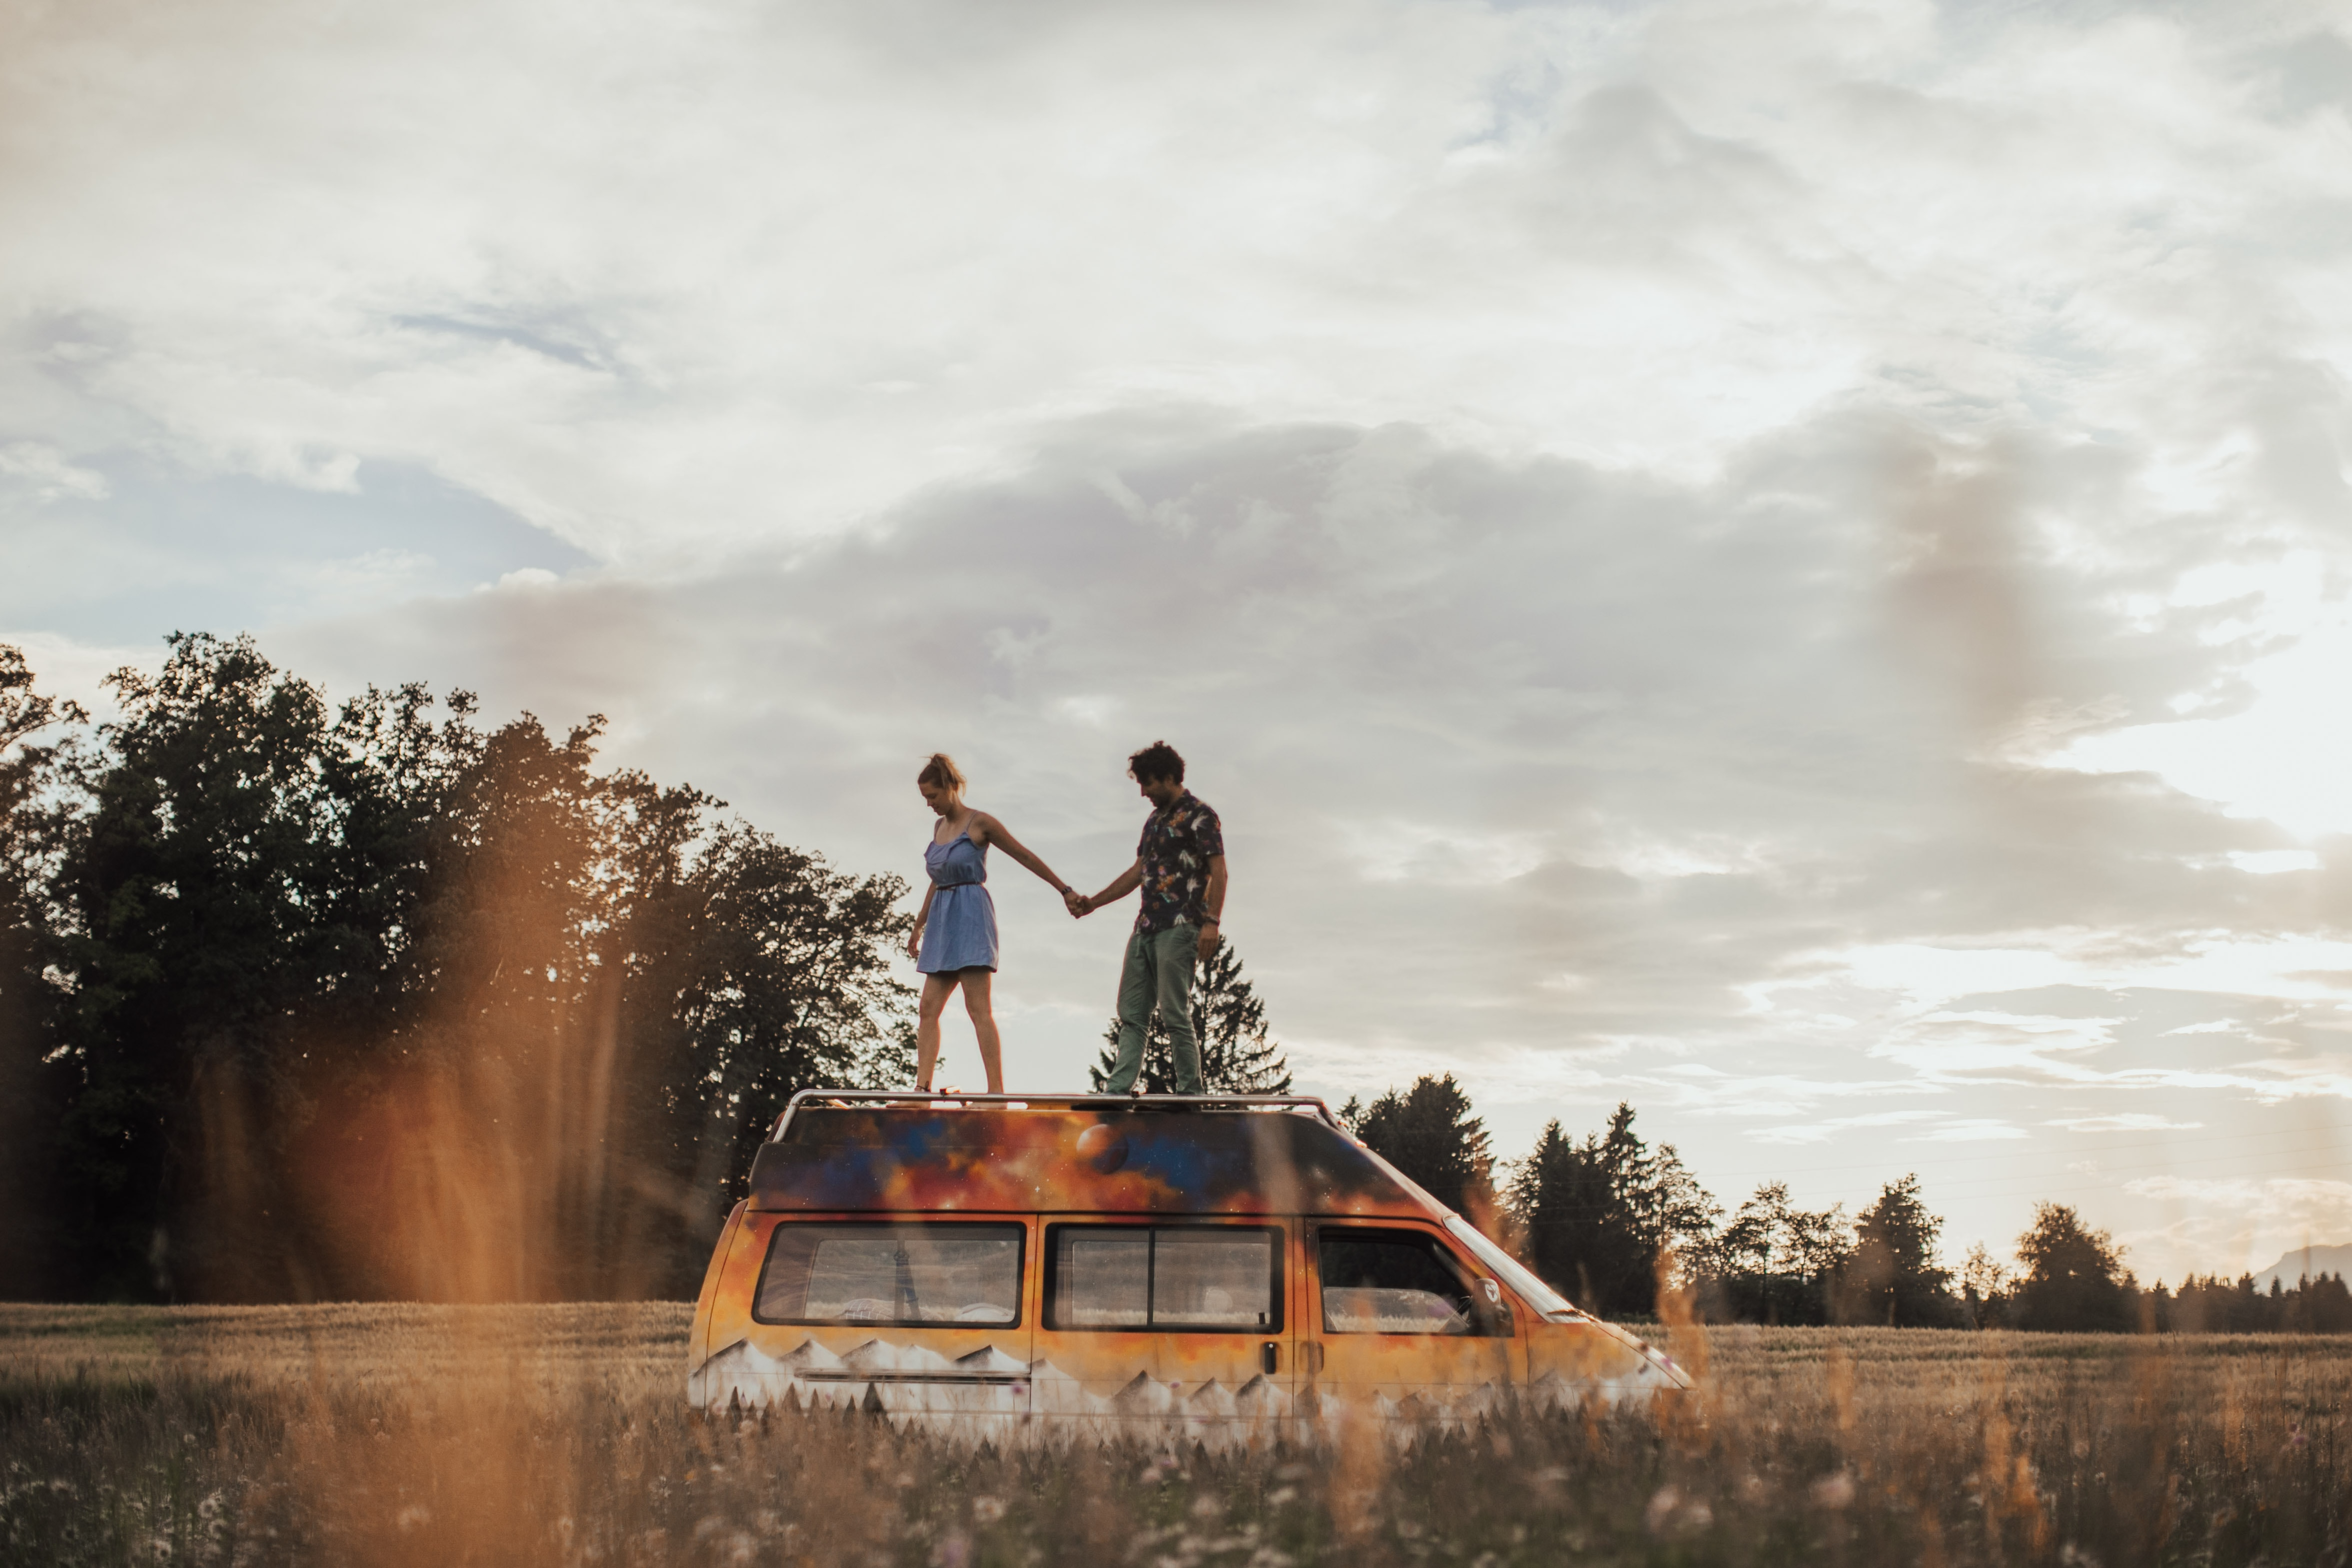 Why are young adults all over the world hooked on car camping and the vanlife?